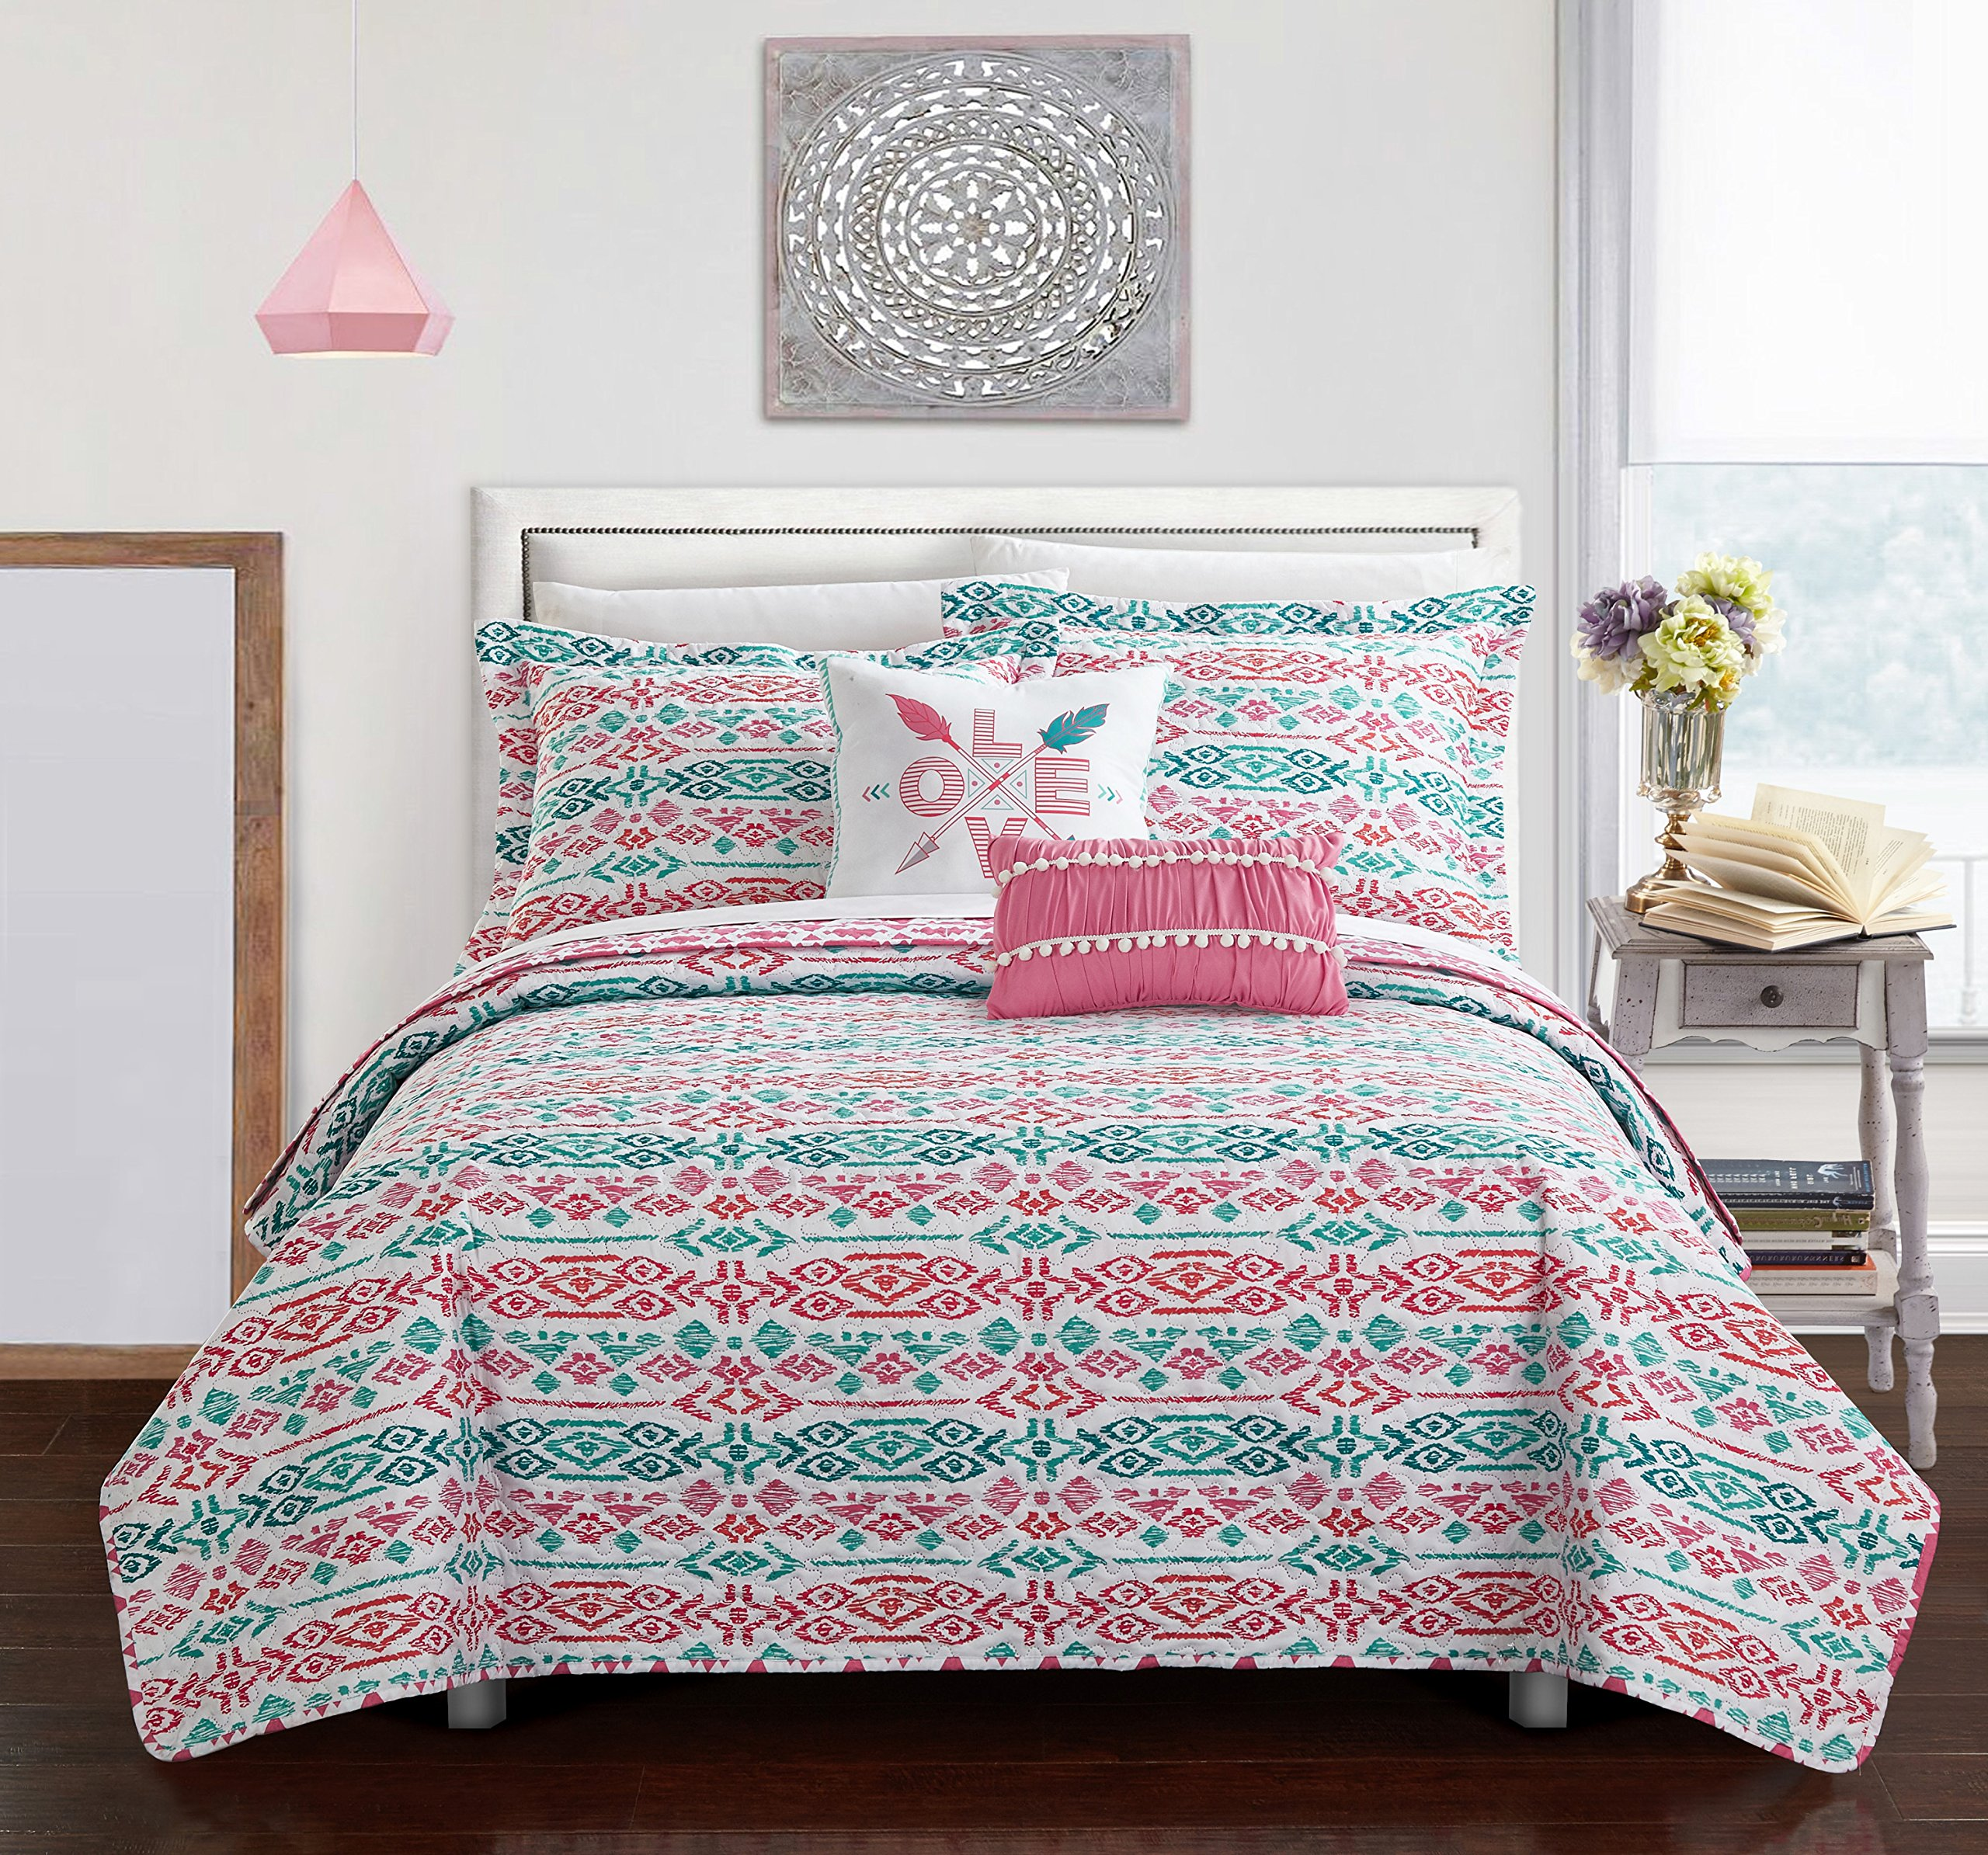 Chic Home 4 Piece Millie REVERSIBLE Ikat bohemian designer printed quilt and shams set, includes LOVE and pom pom pillow Twin Quilt Set Aqua by Chic Home (Image #2)